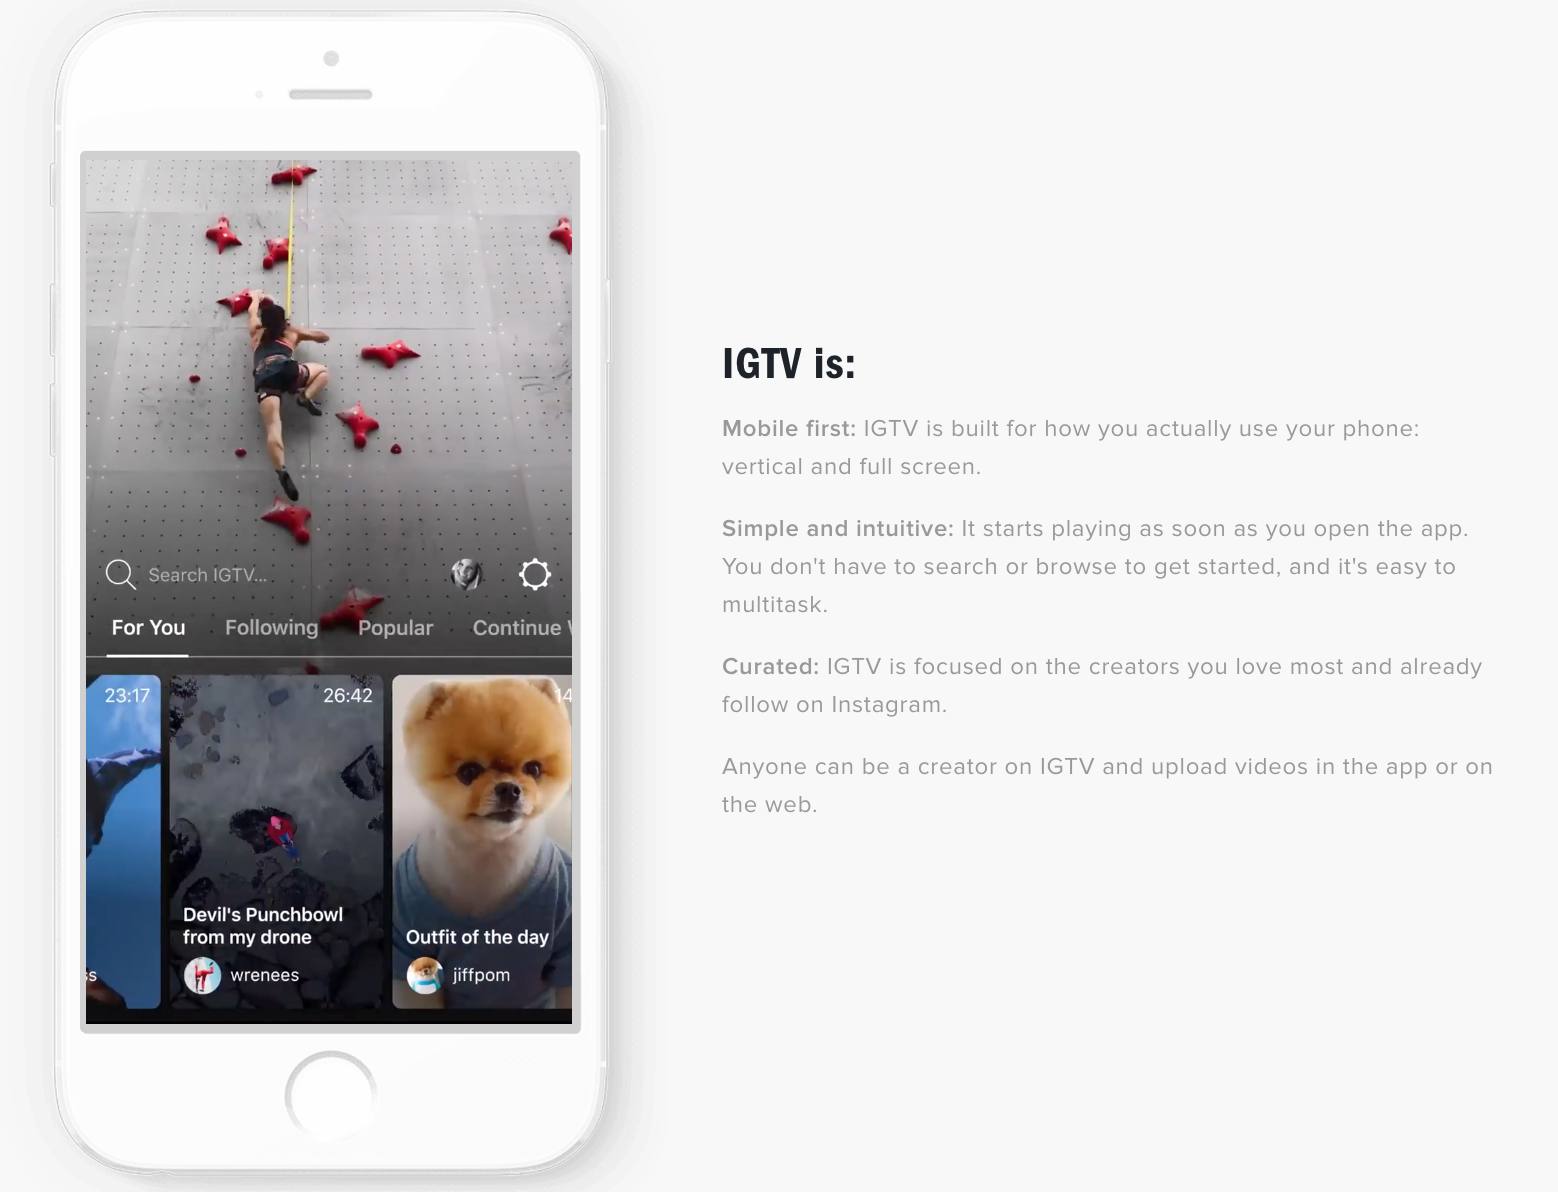 Instagram announces new long-form video platform